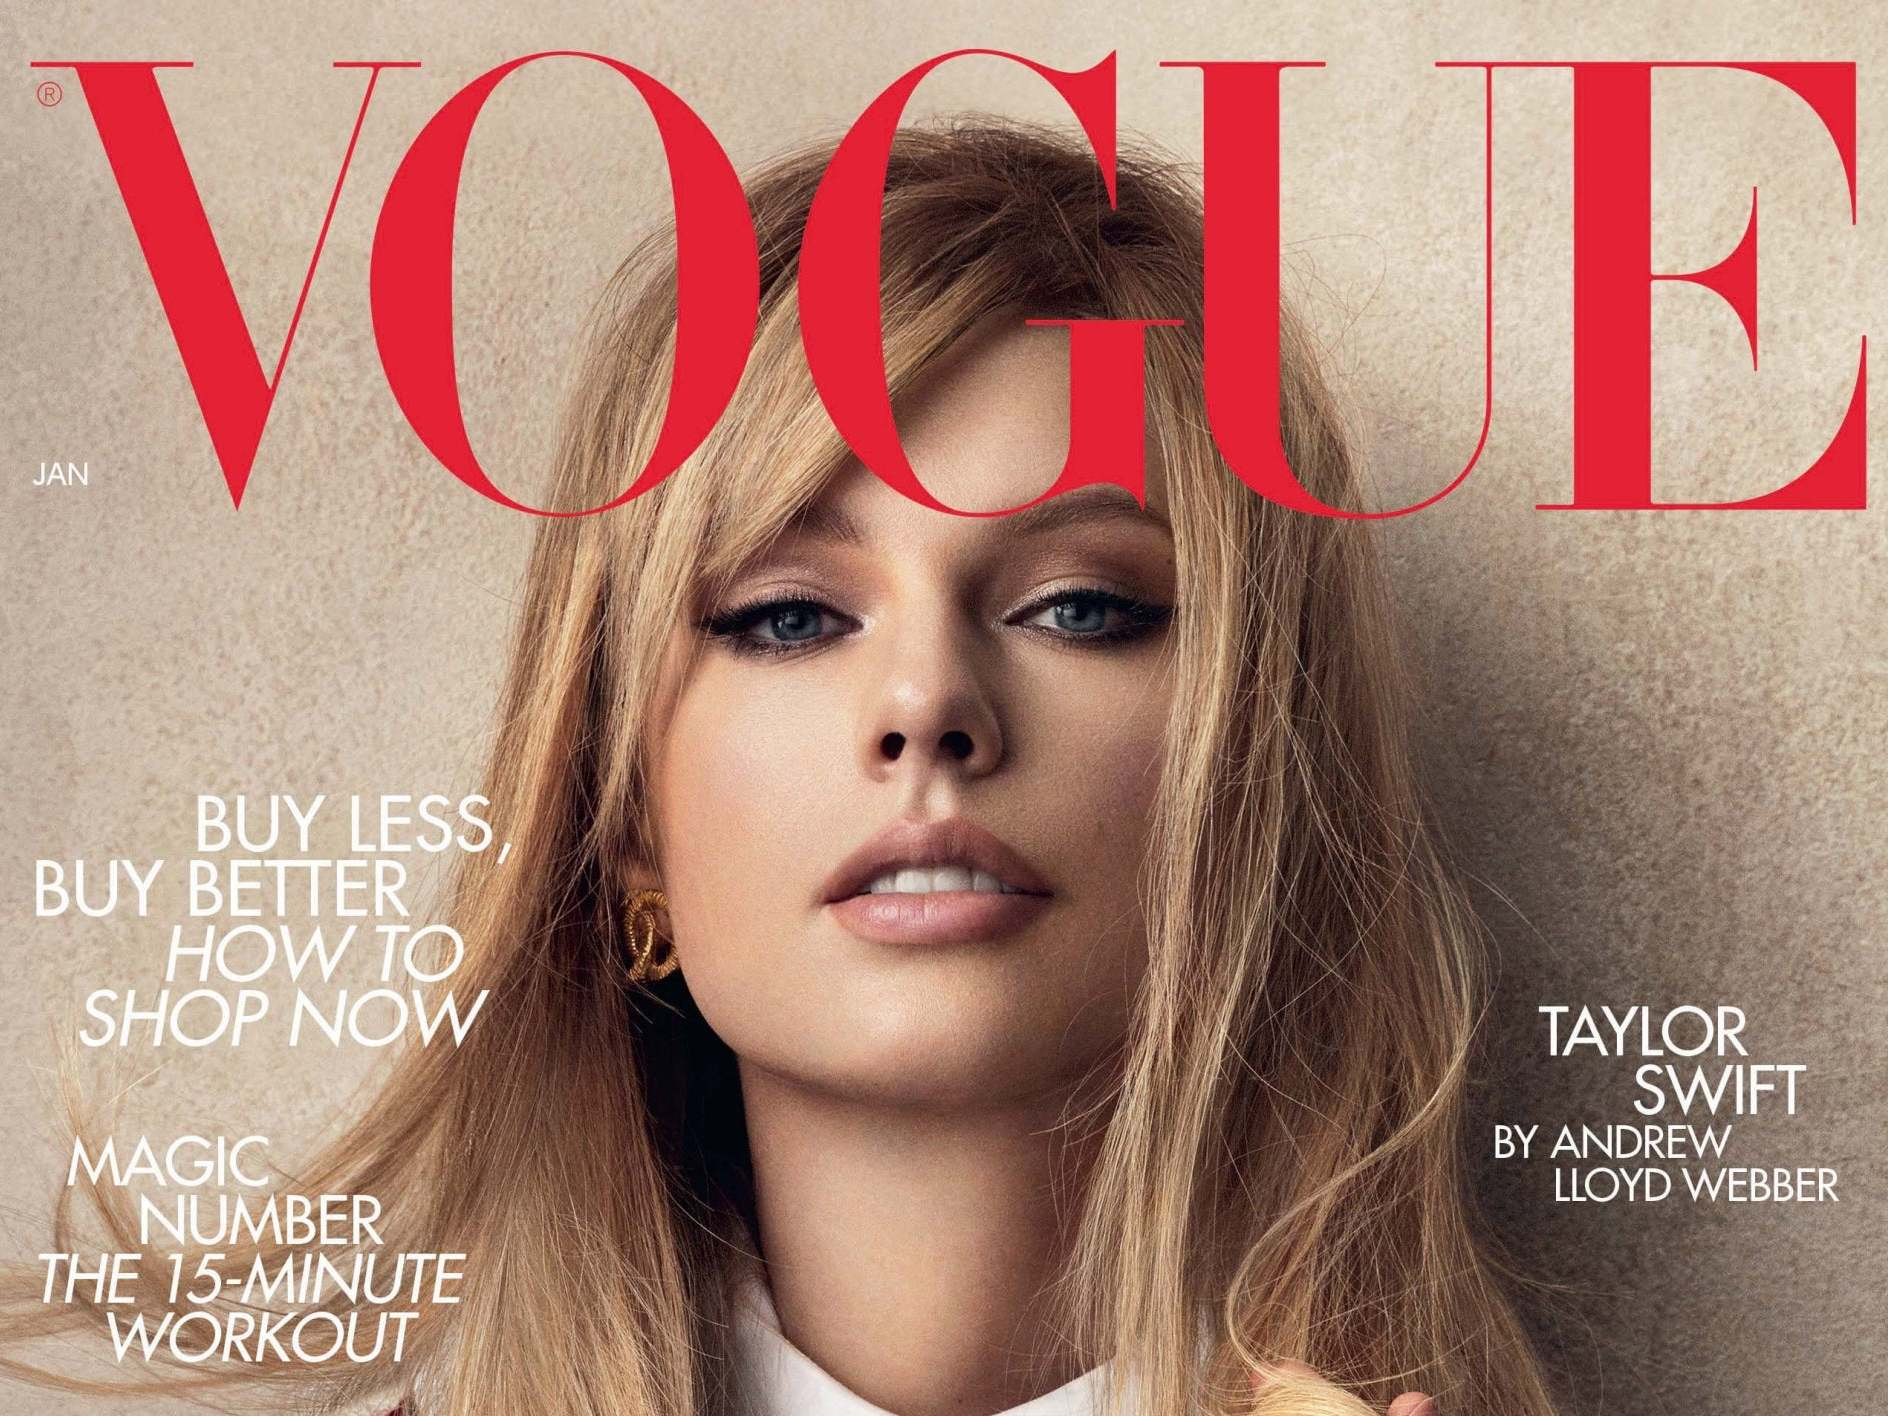 Taylor Swift wears vintage Chanel on Vogue cover to 'contribute to s…